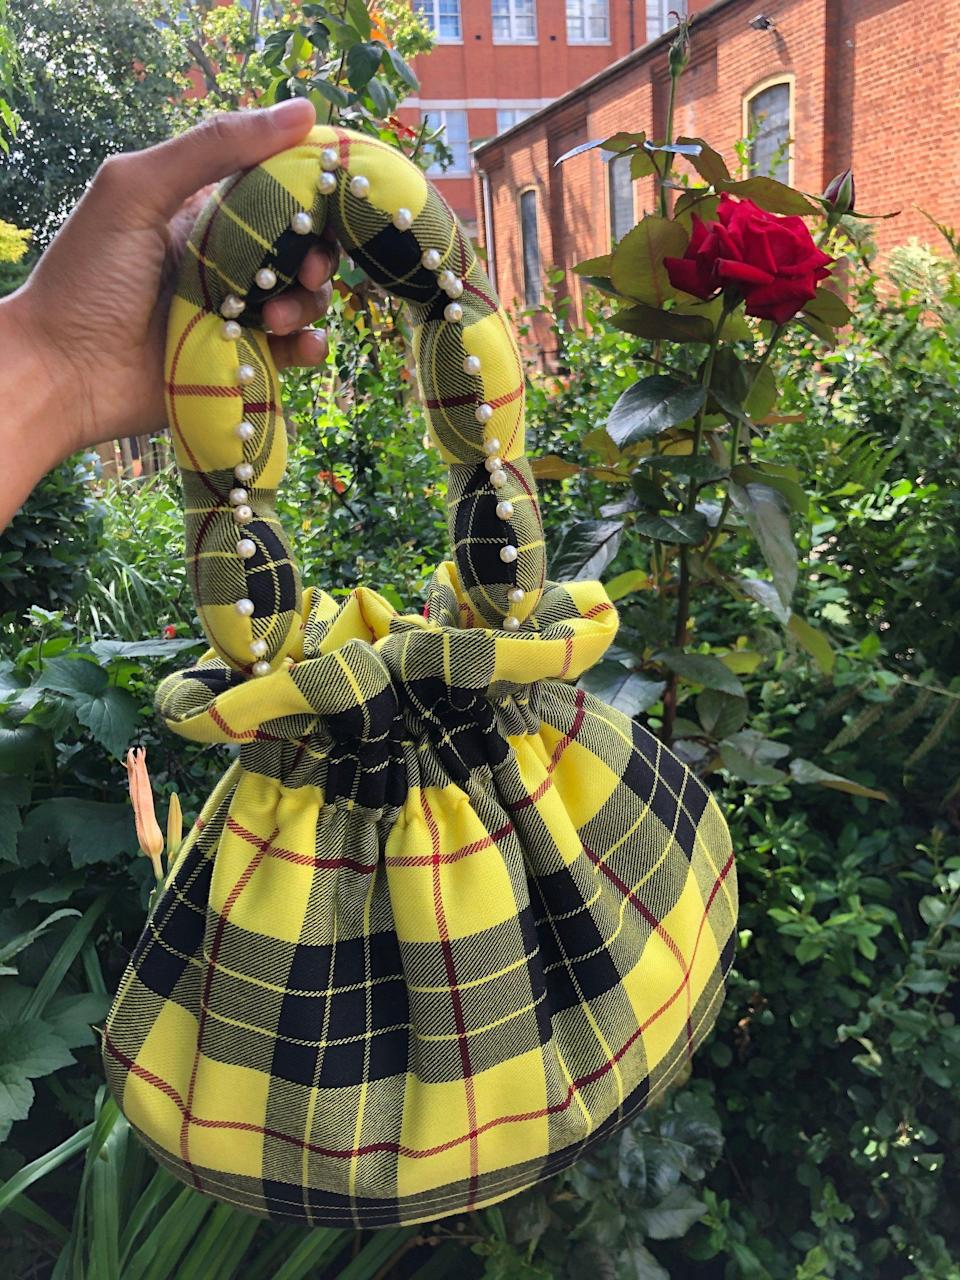 "<p><strong>Flat Fifteen</strong></p><p>flatfifteen.co.uk</p><p><strong>£75.00</strong></p><p><a href=""https://flatfifteen.co.uk/products/yellow-black-tartan-scallop-handle-bag"" rel=""nofollow noopener"" target=""_blank"" data-ylk=""slk:SHOP IT"" class=""link rapid-noclick-resp"">SHOP IT</a></p><p>This super sweet lil' puffy bag, inspired by those ""your Aunty would probably wear to Church on a Sunday,"" is made from remnant and vintage fabric and beads from used jewelry. It's puffed up from stuffing used to fill toys and furniture.</p>"